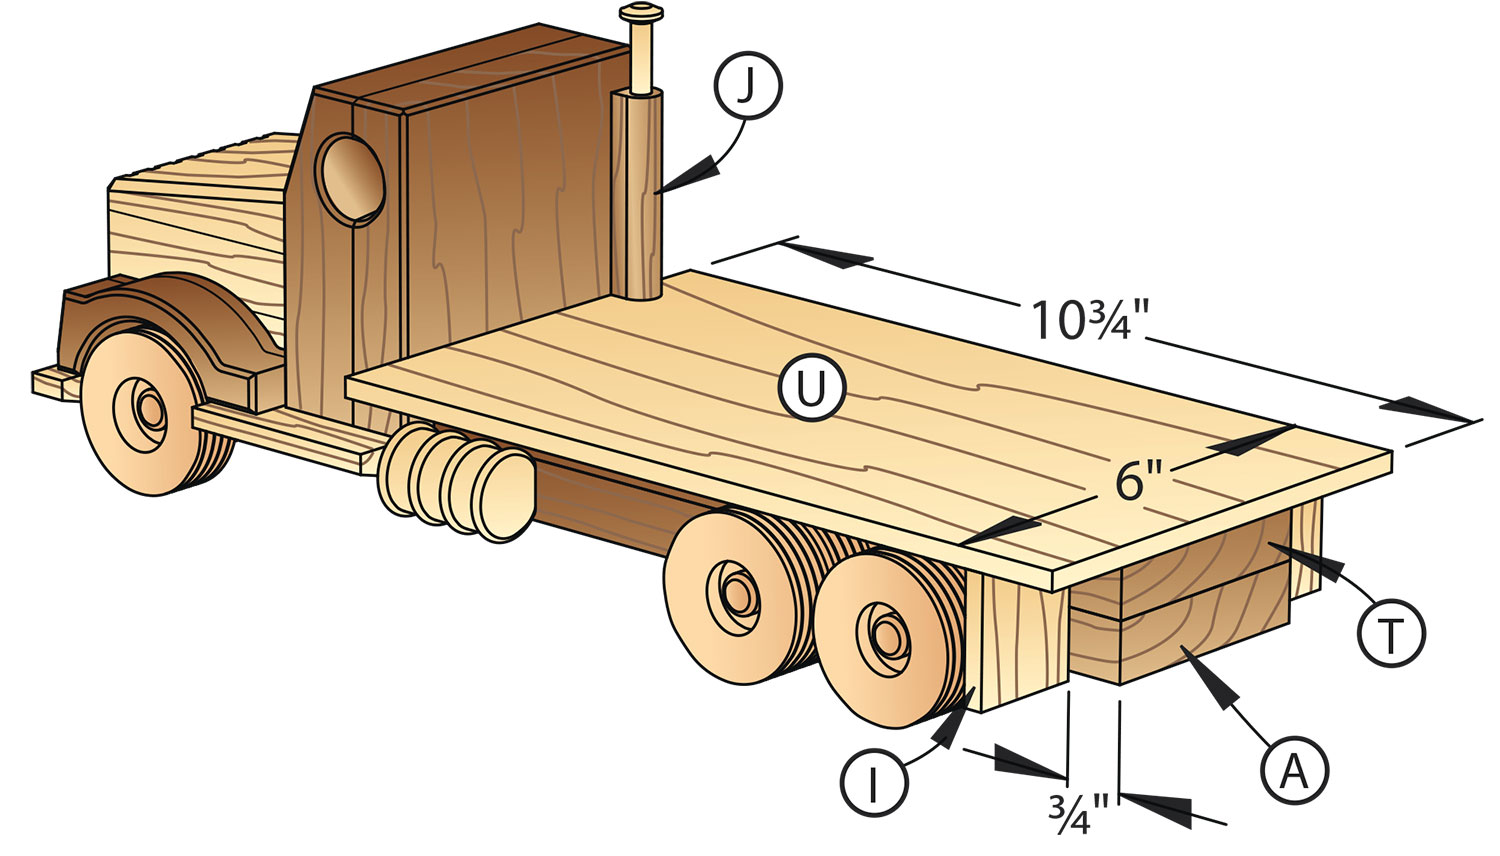 Woodworking Plans Toy Truck : Construction grade concrete truck woodworking plan from